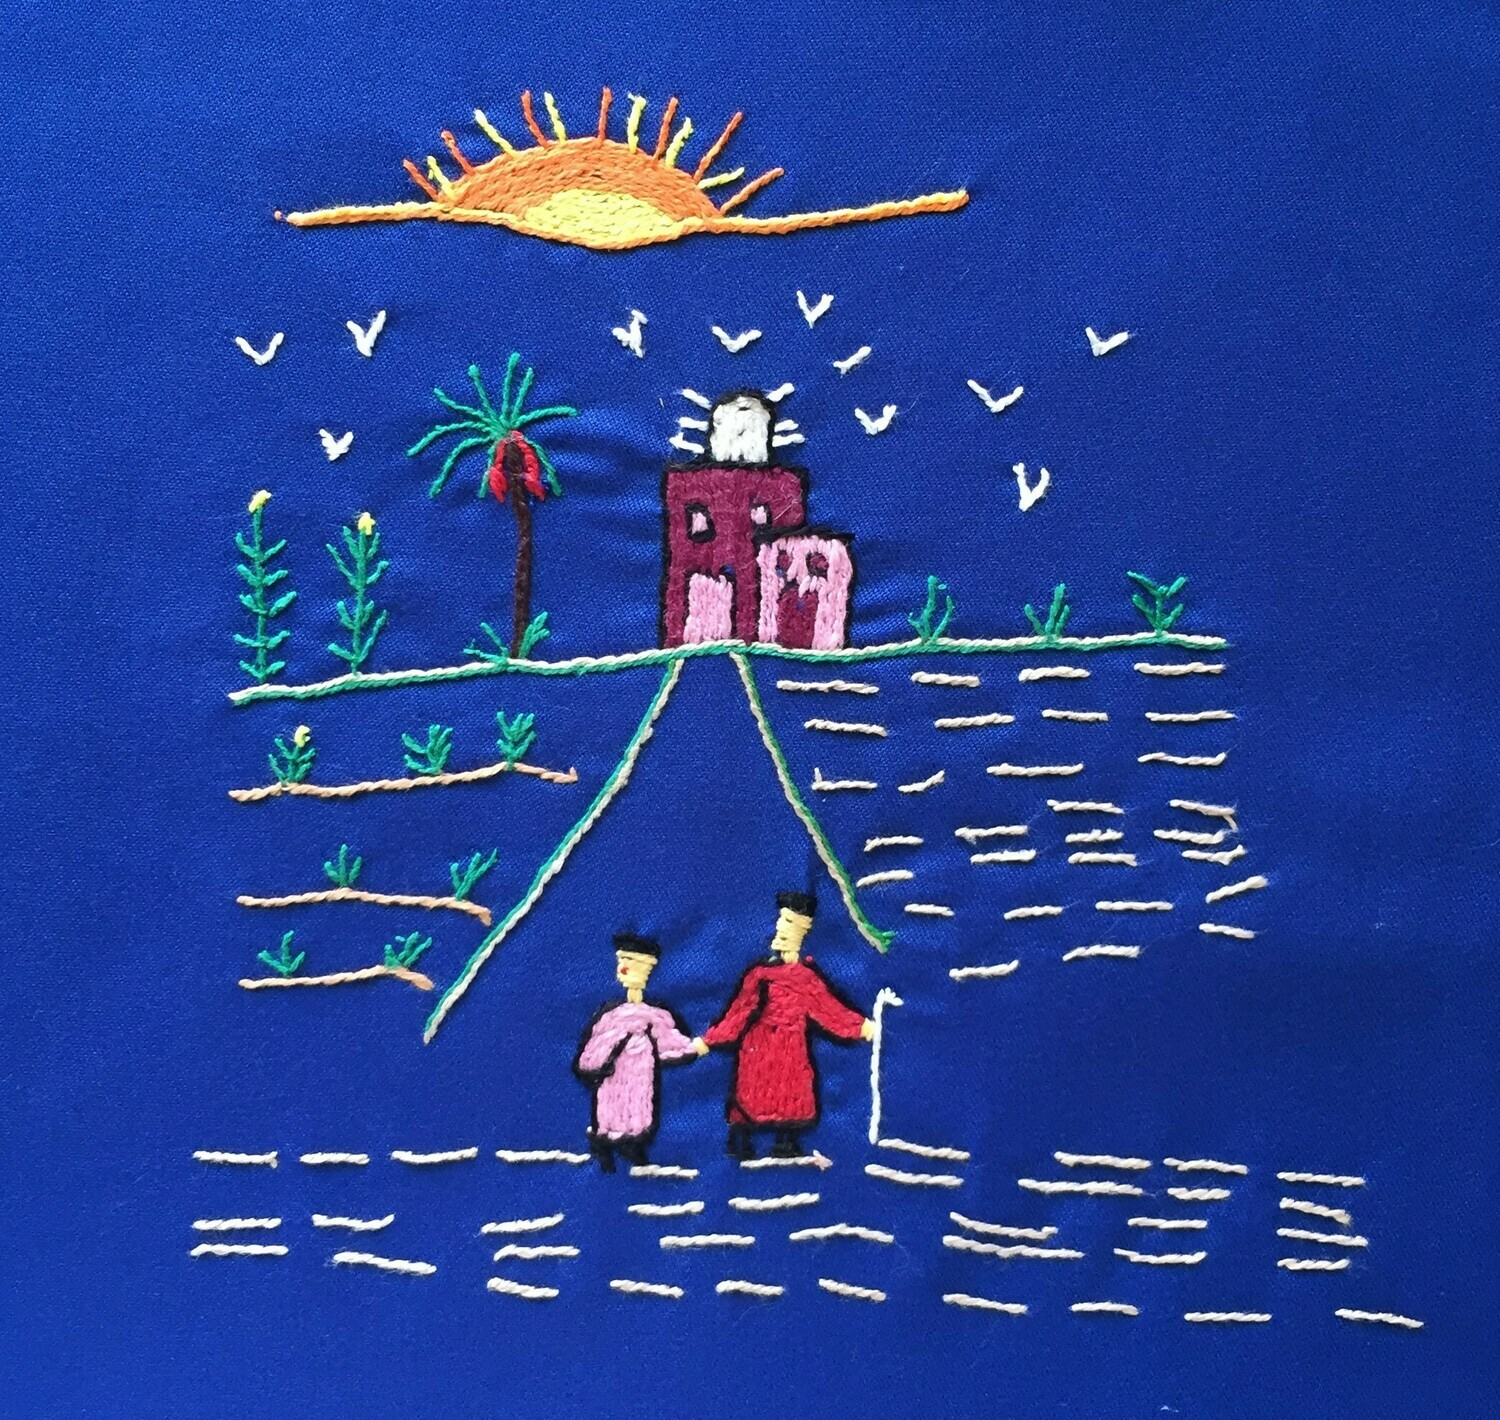 Tote Bag: Royal Blue: It's a new day!